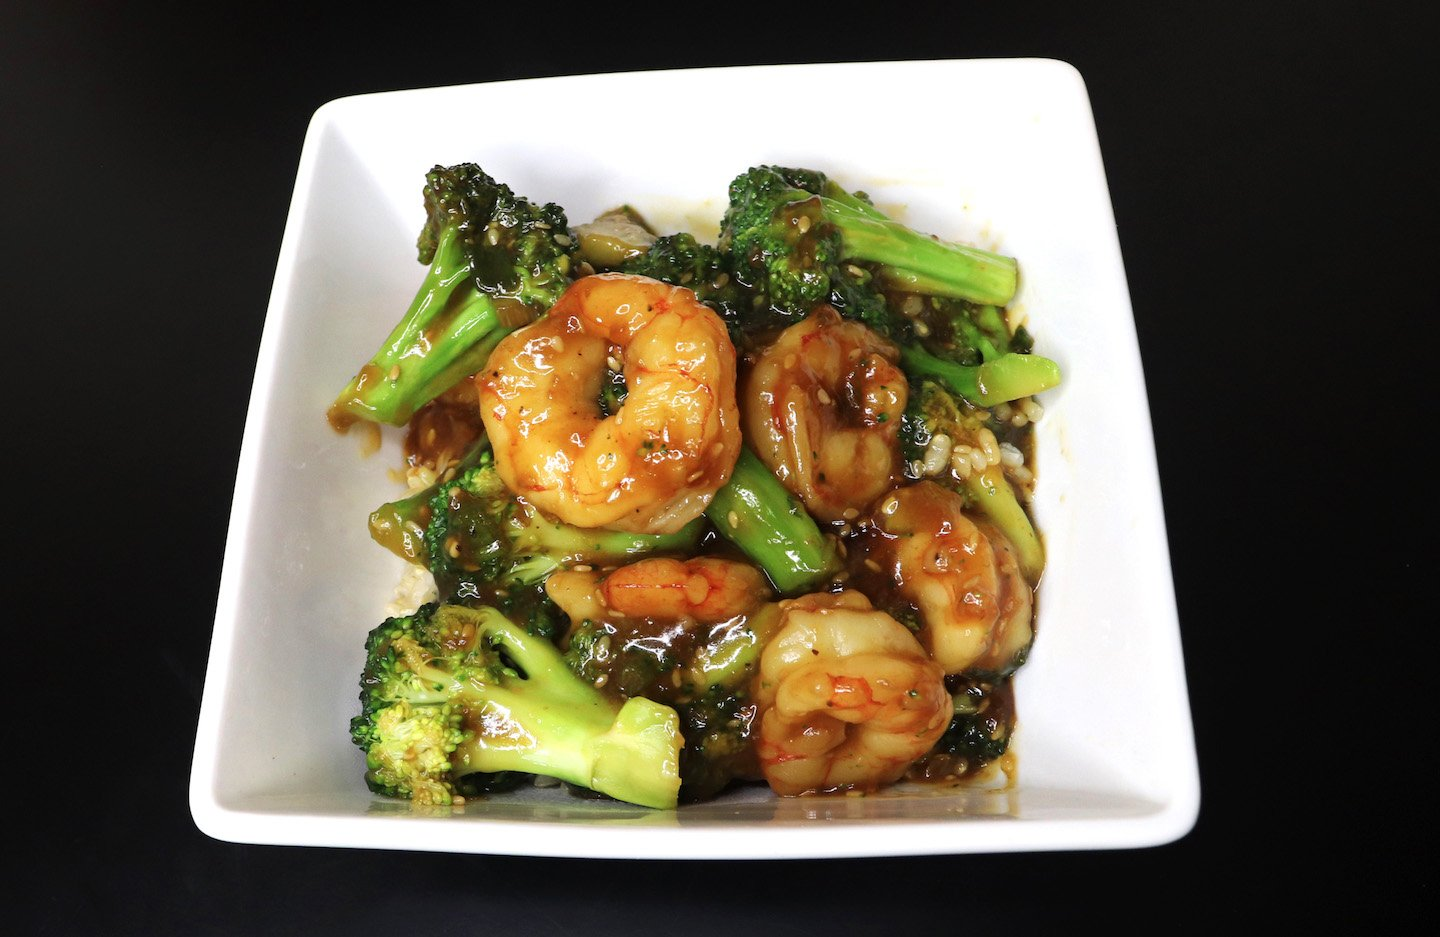 Shrimp and Broccoli Stir Fry Recipe